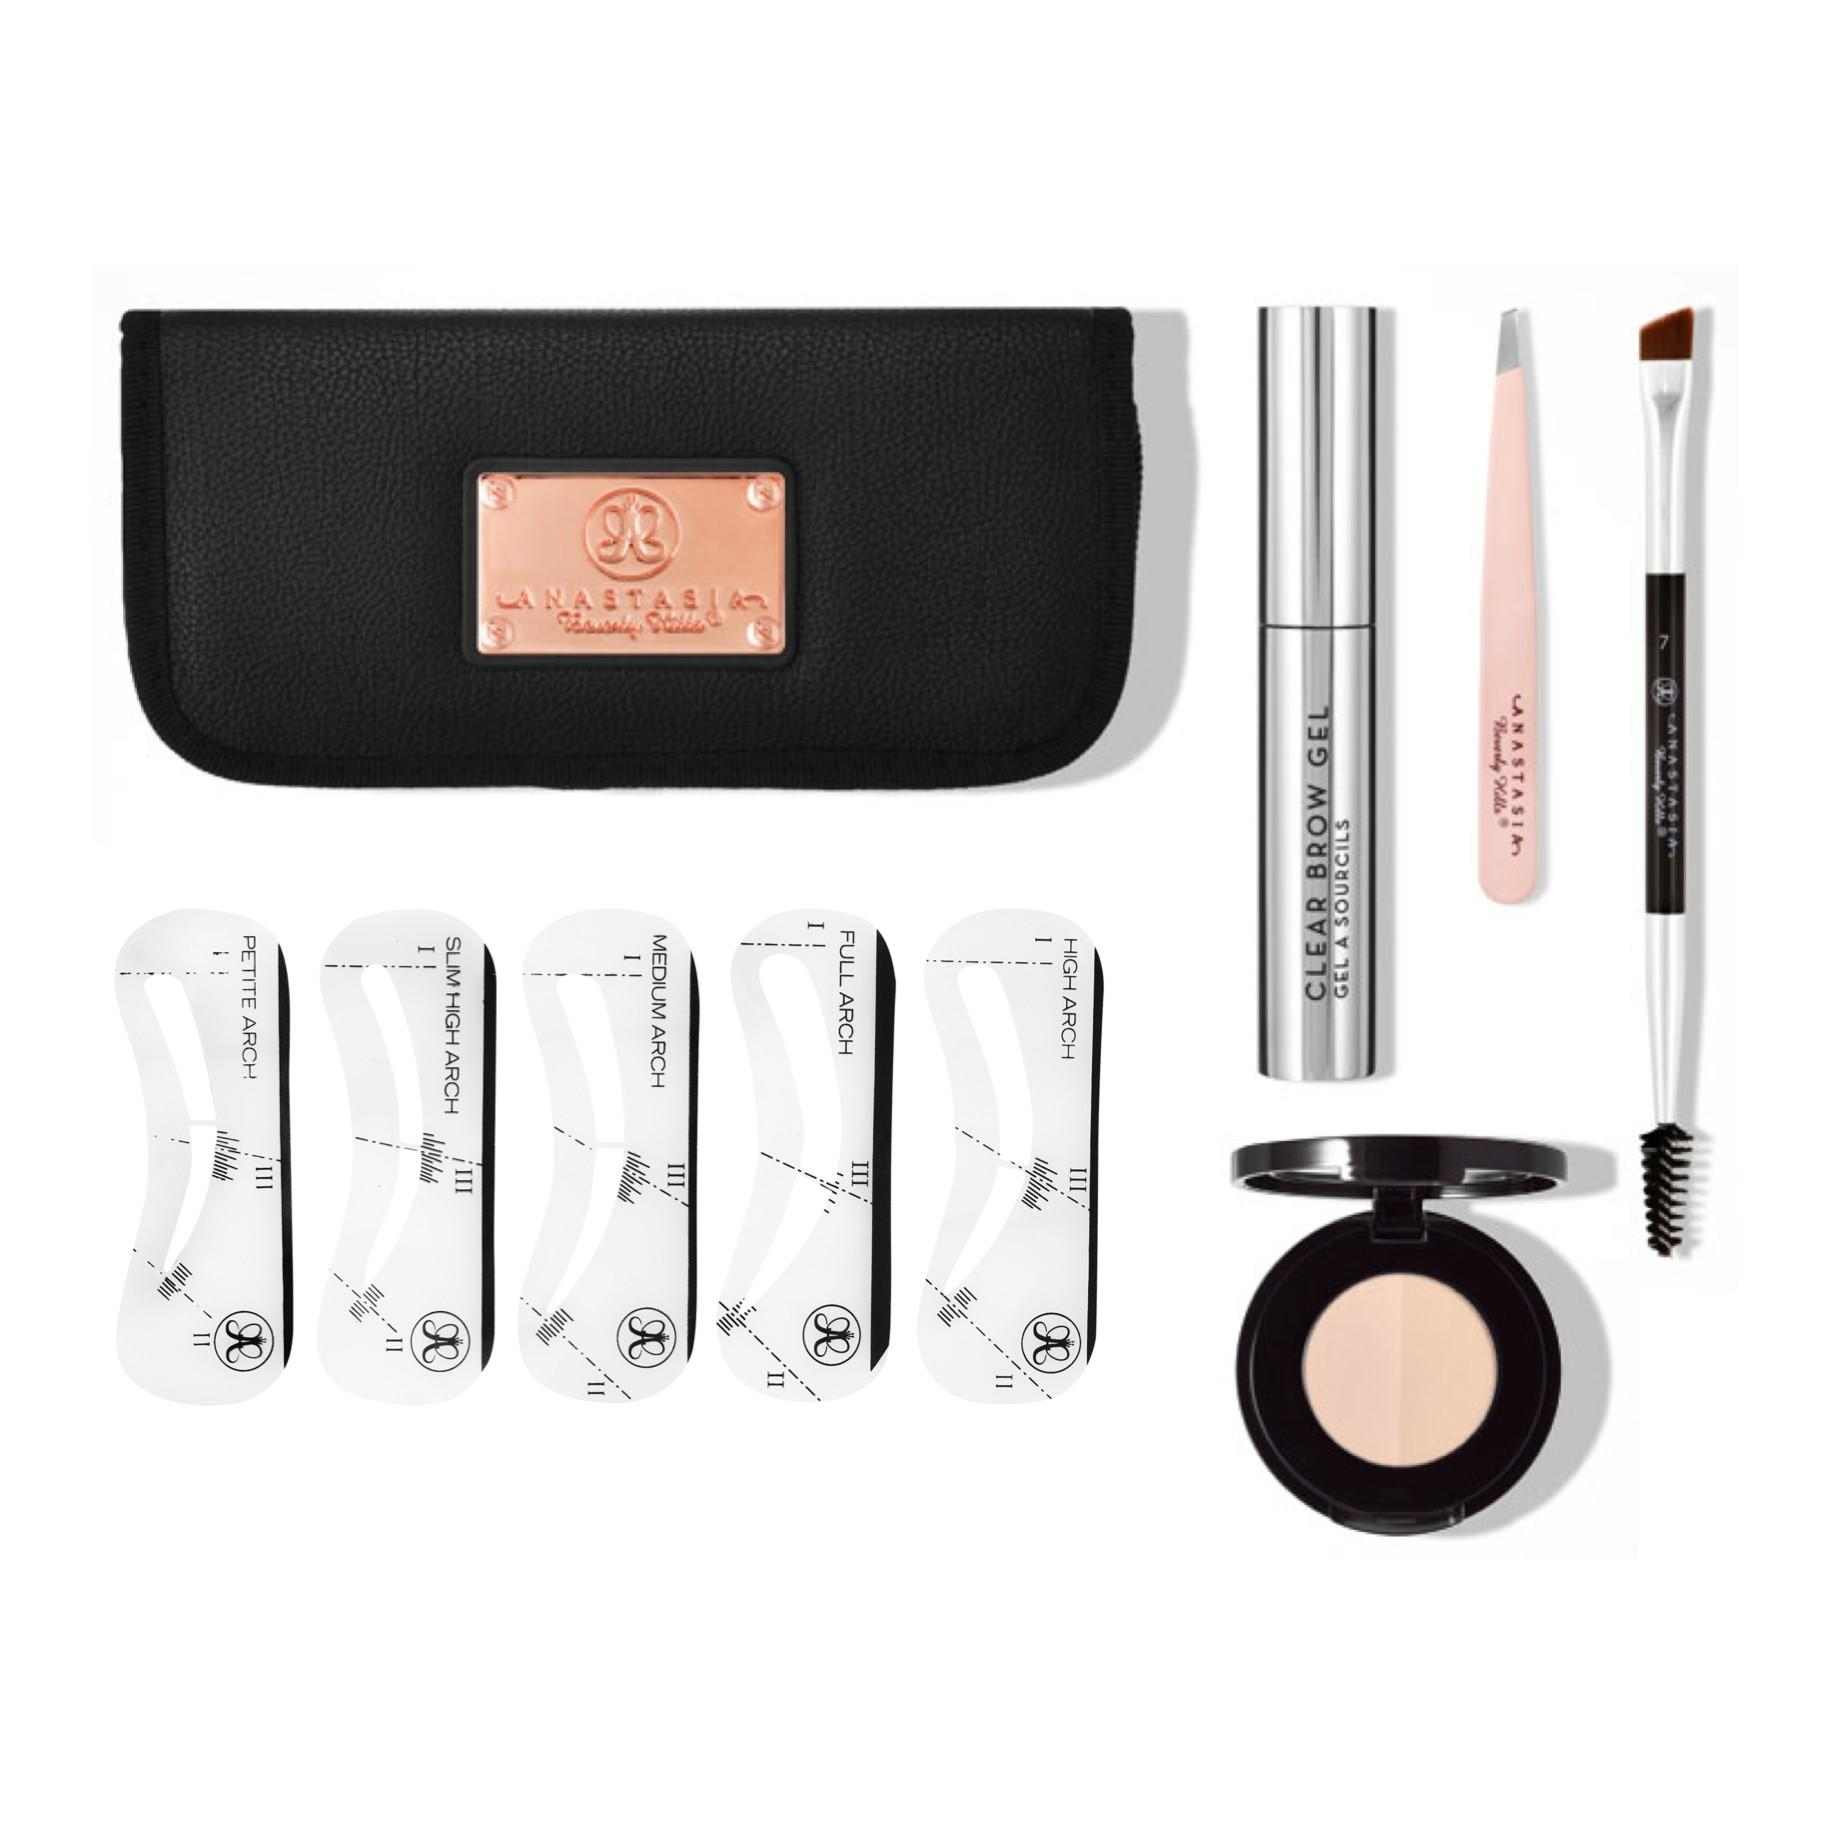 Anastasia Beverly Hills Brow Kit (Without Petite Arch Stencil & Powder Duo)